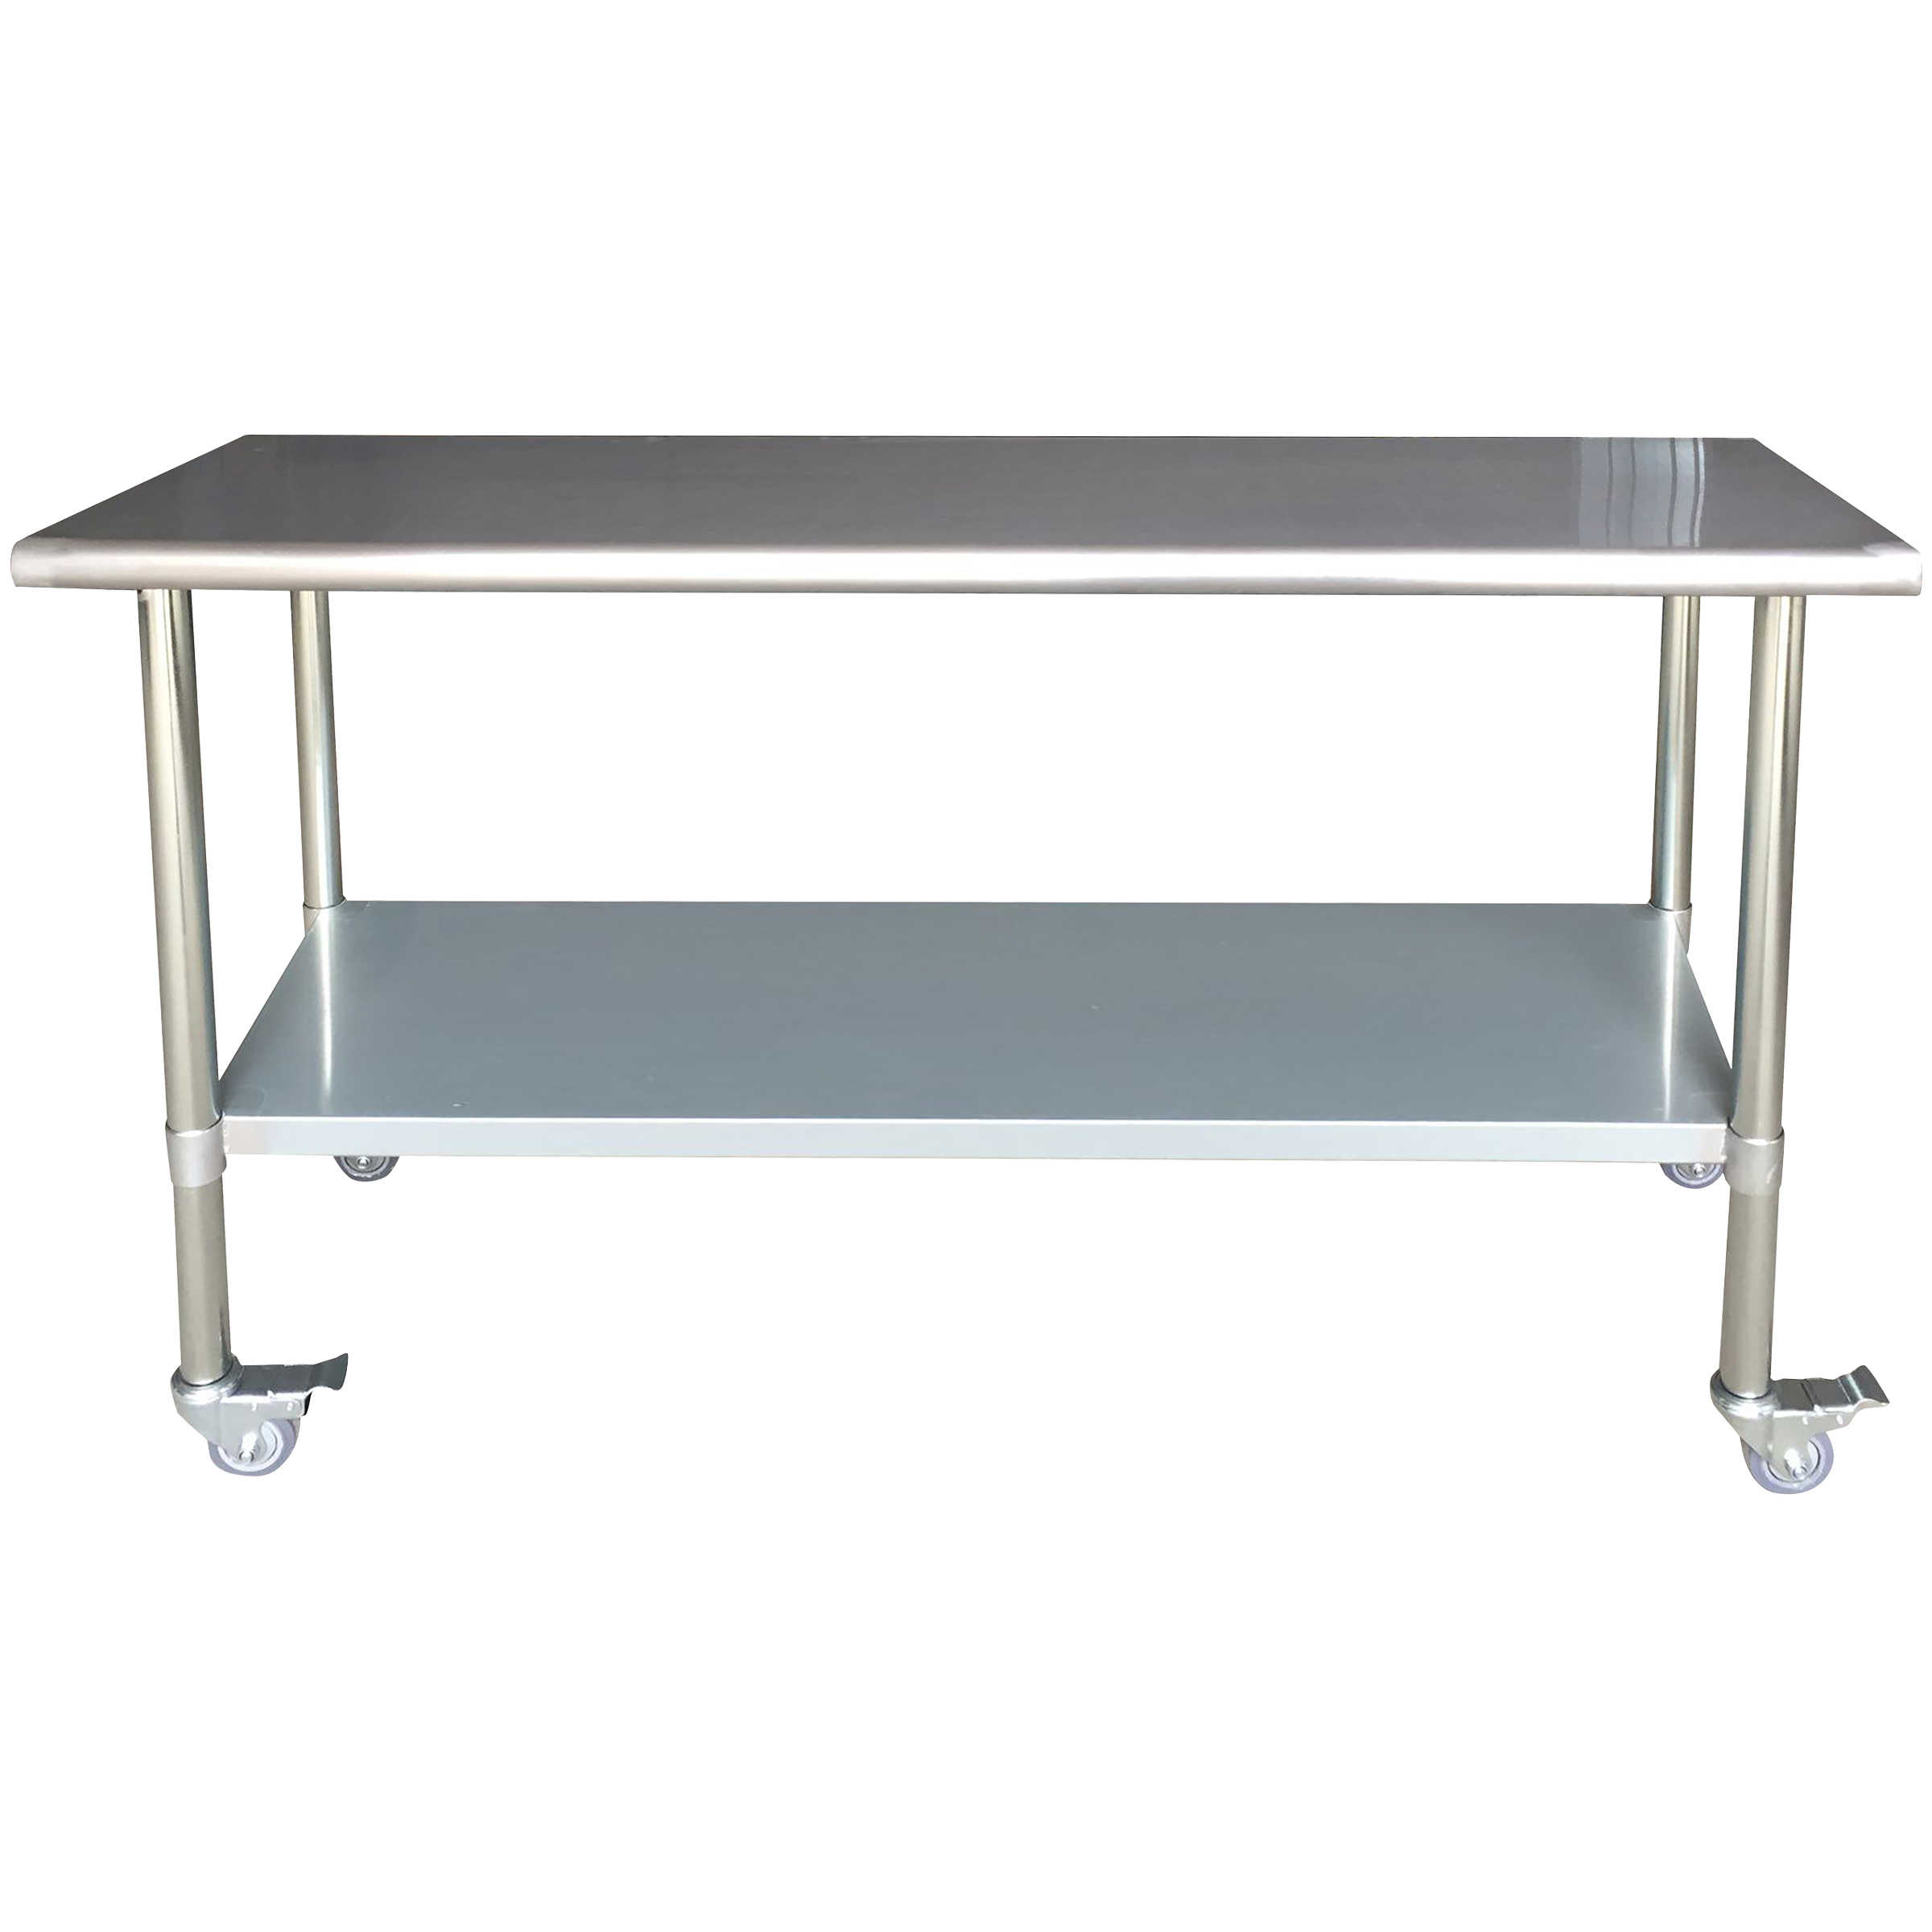 Sportsman Series Stainless Steel Work Table with Casters 24 x 72 Inches